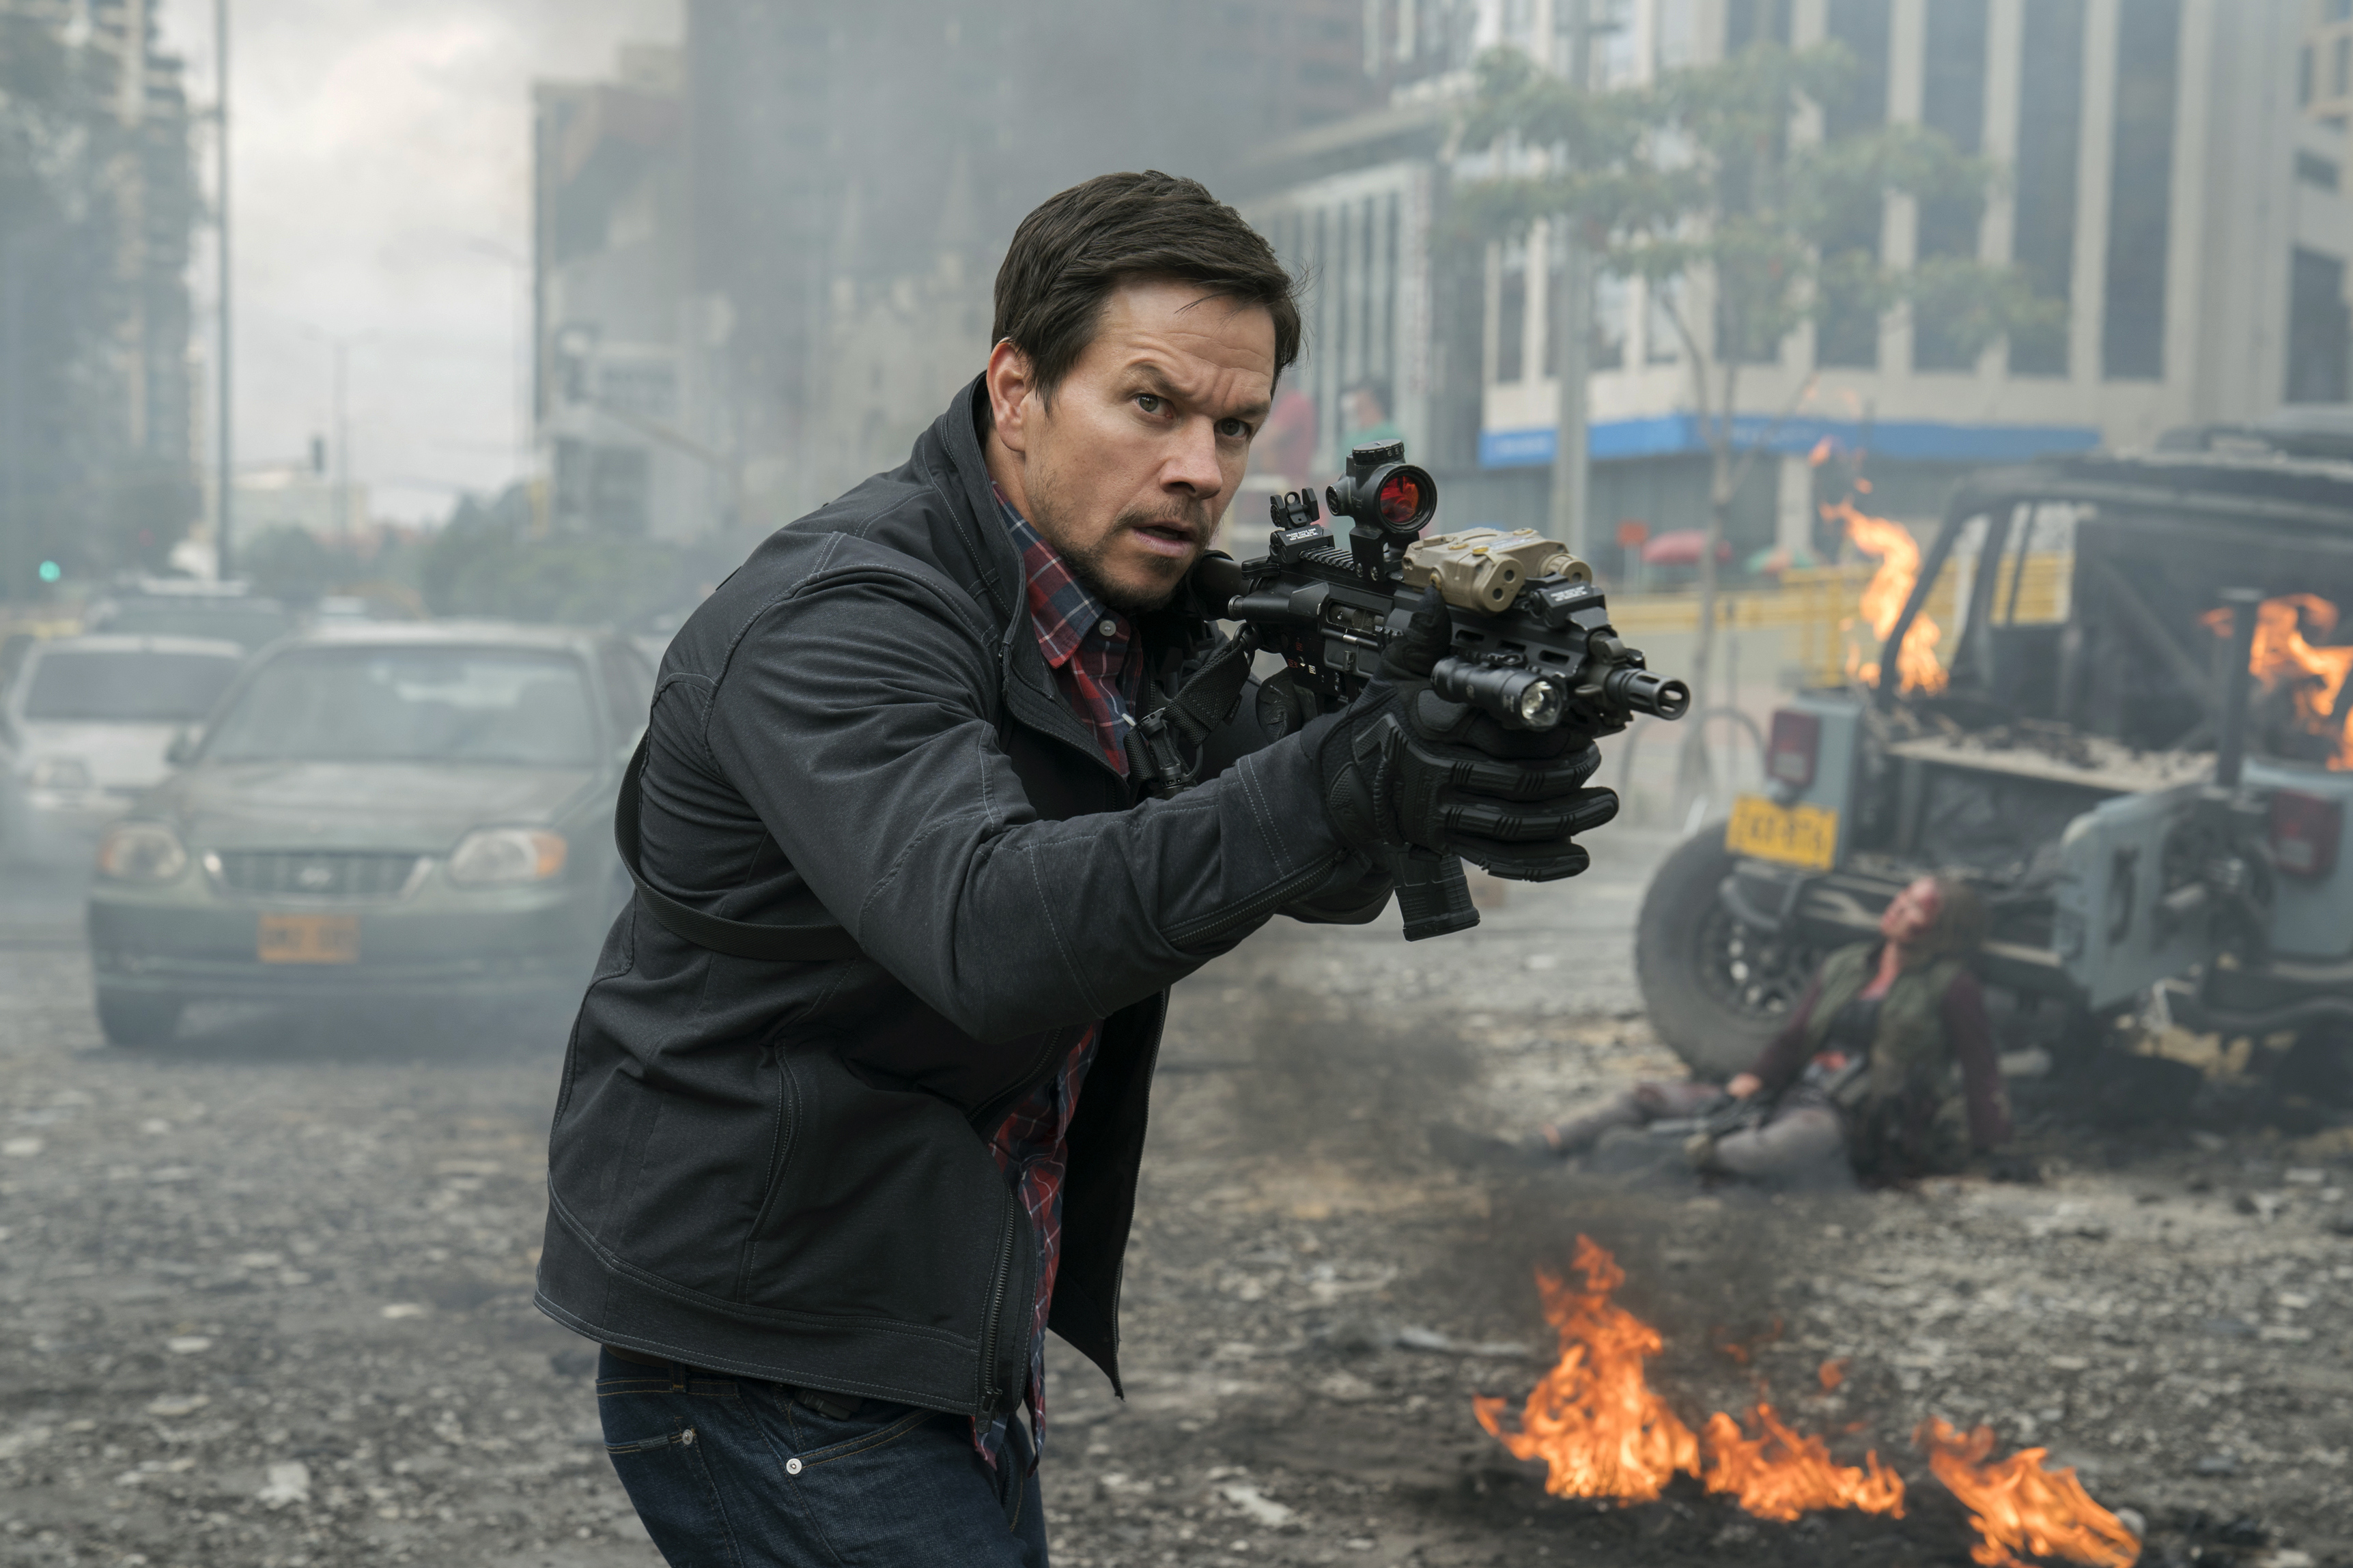 Mark Wahlberg stars as Ground Branch officer Jimmy Silva in MILE 22